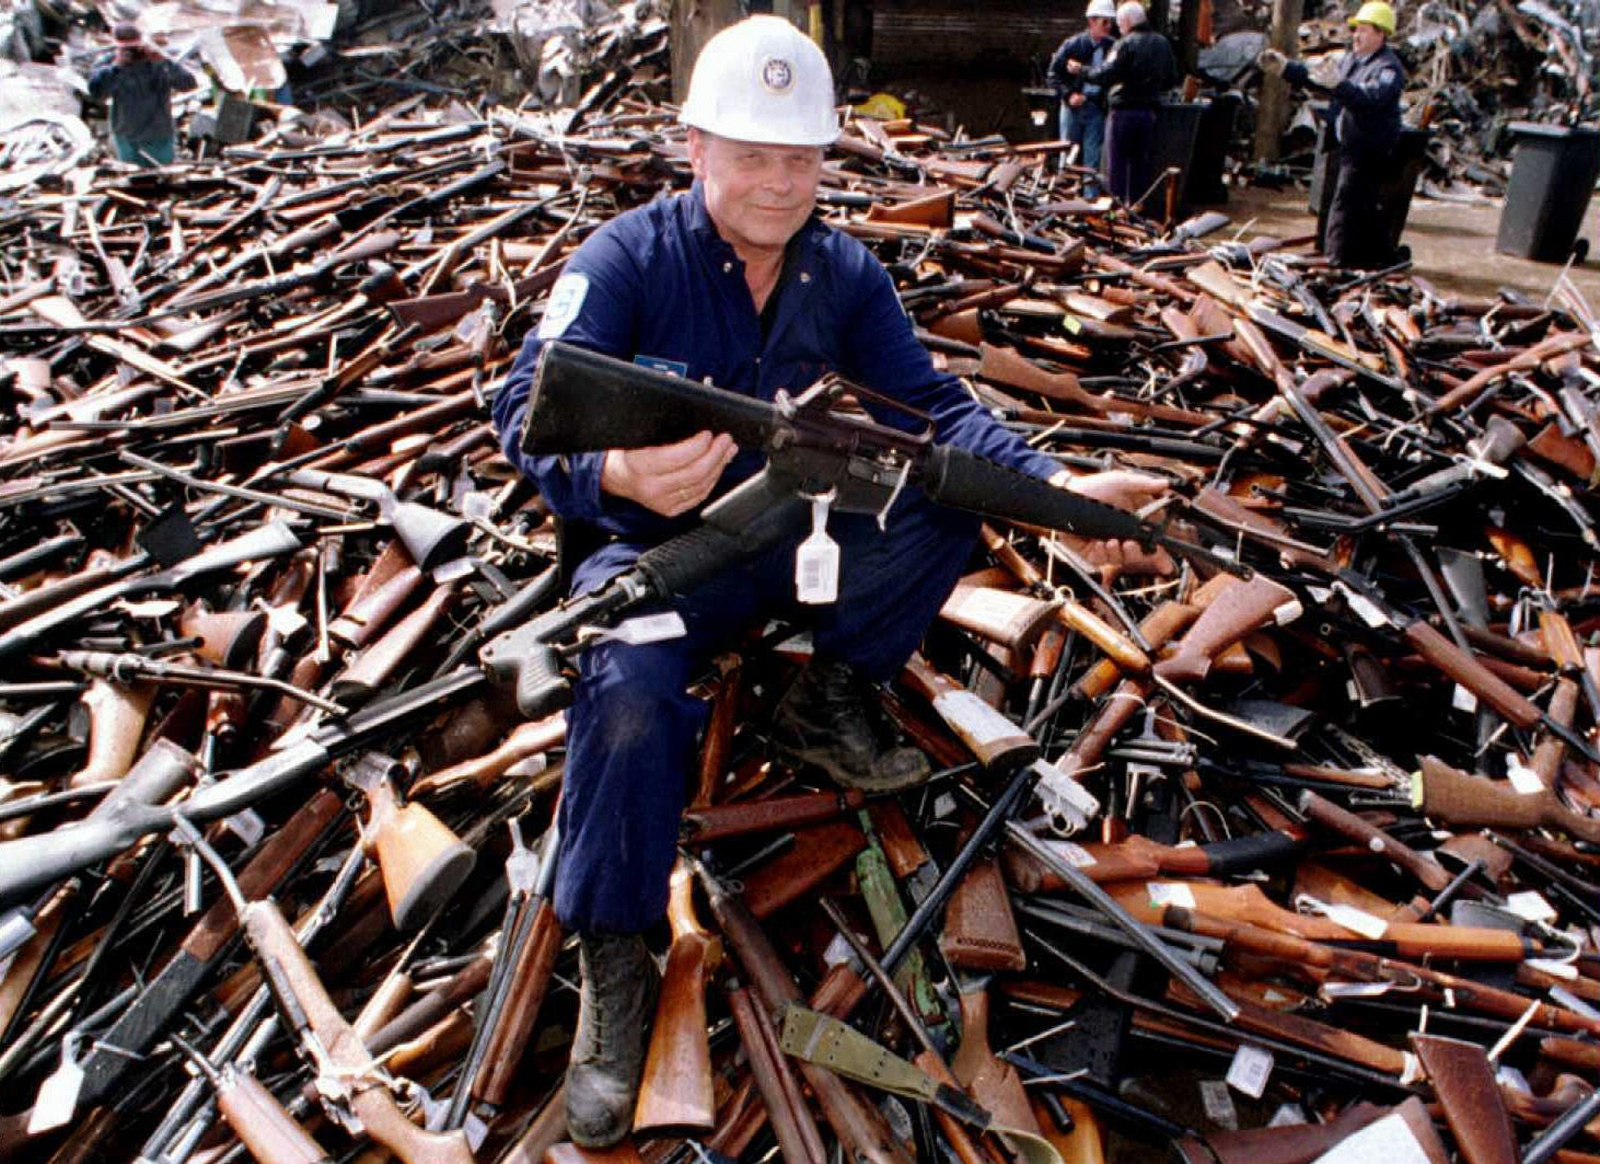 nsw firearms application to acquire